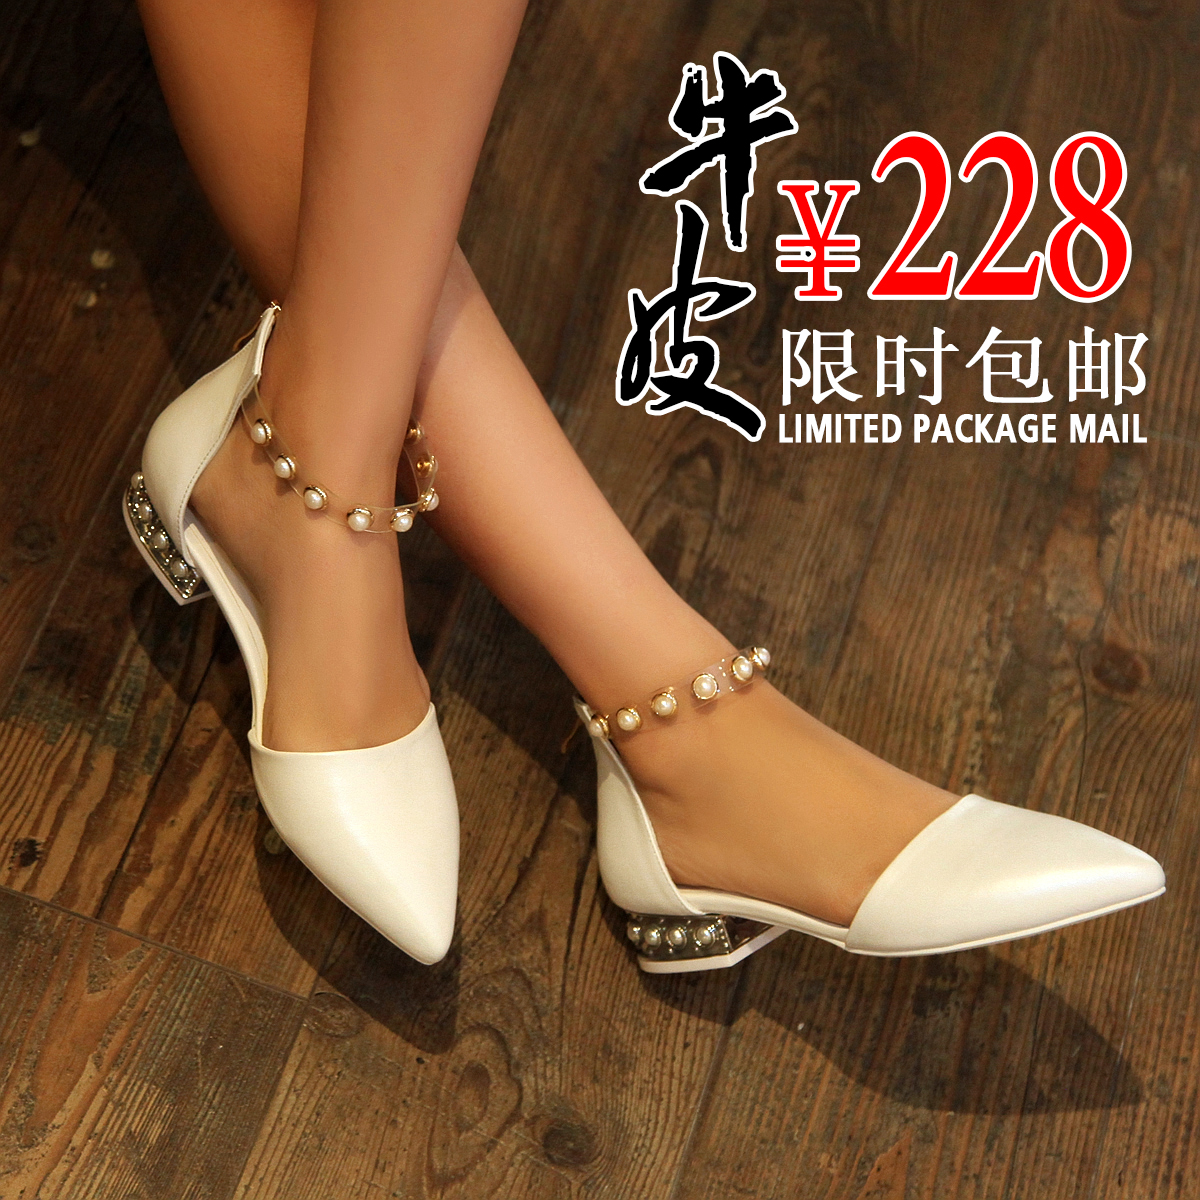 Hong shi ting summer thick with leather shoes with a low heel sandals 2016 new sandals baotou pointed sandals